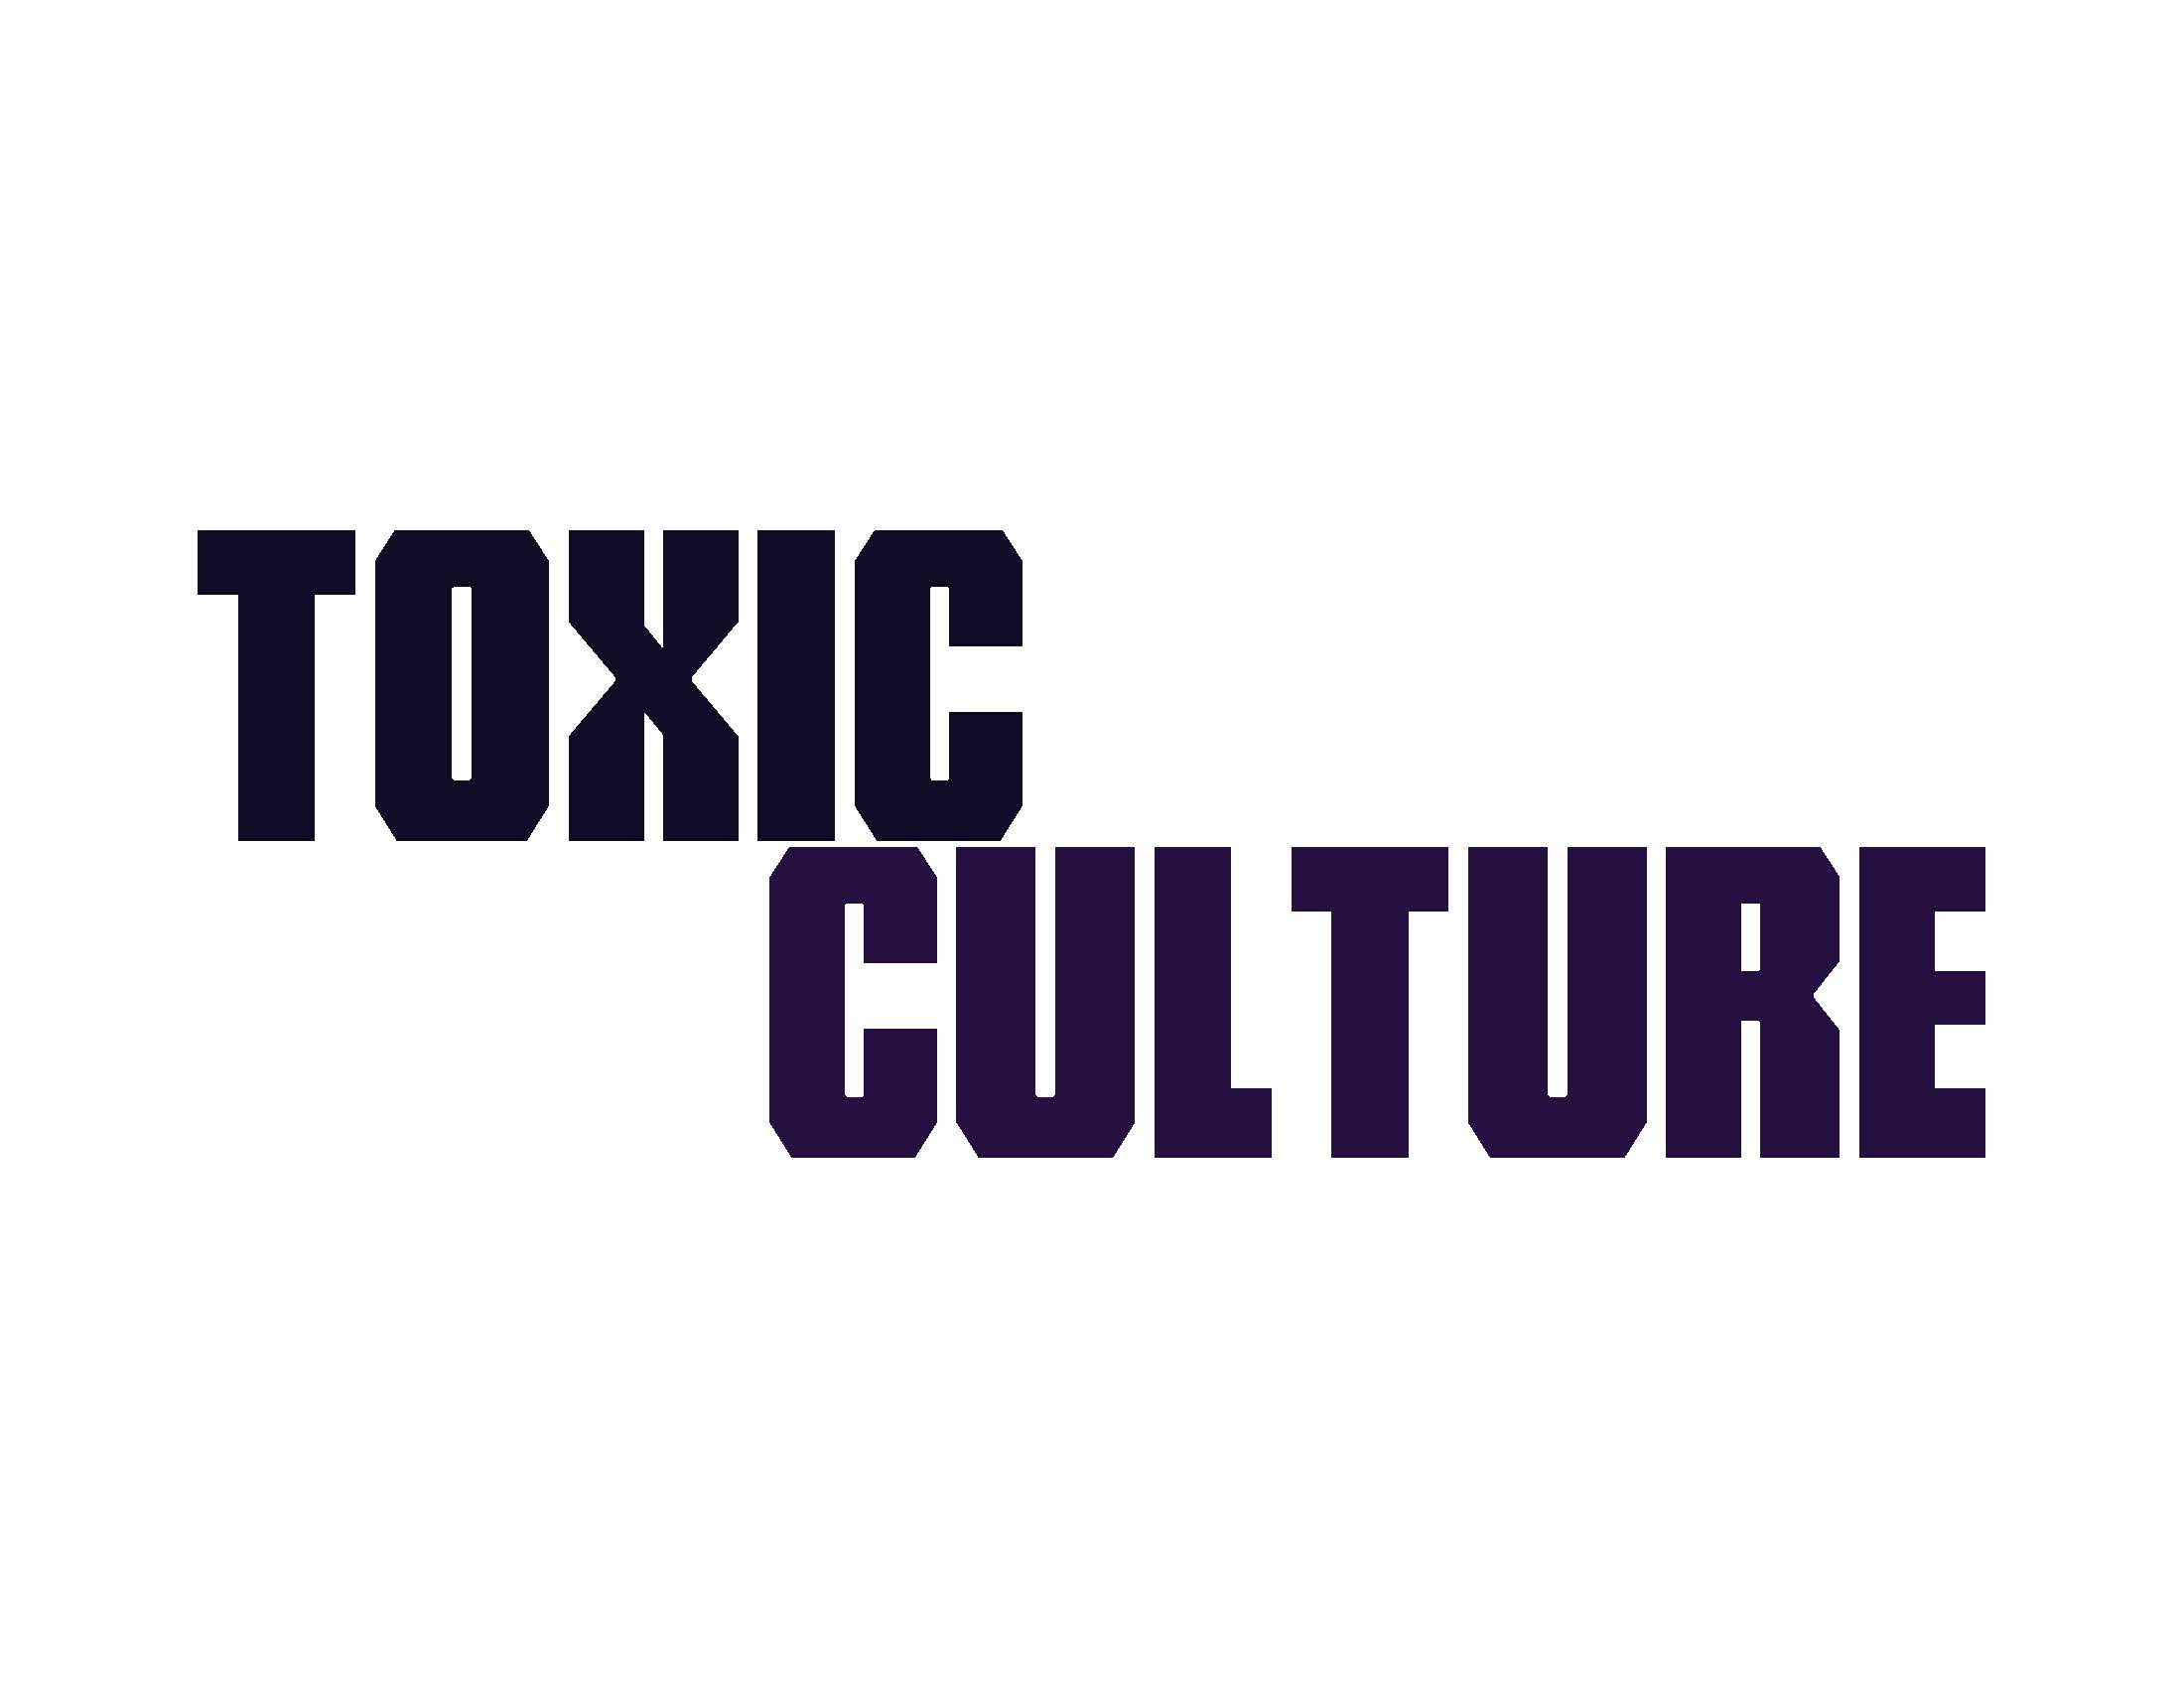 how do organizational environments contribute to toxic cultures If you work in a toxic culture, the effects are more far-reaching than low job satisfaction working in such an environment could actually harm your health.